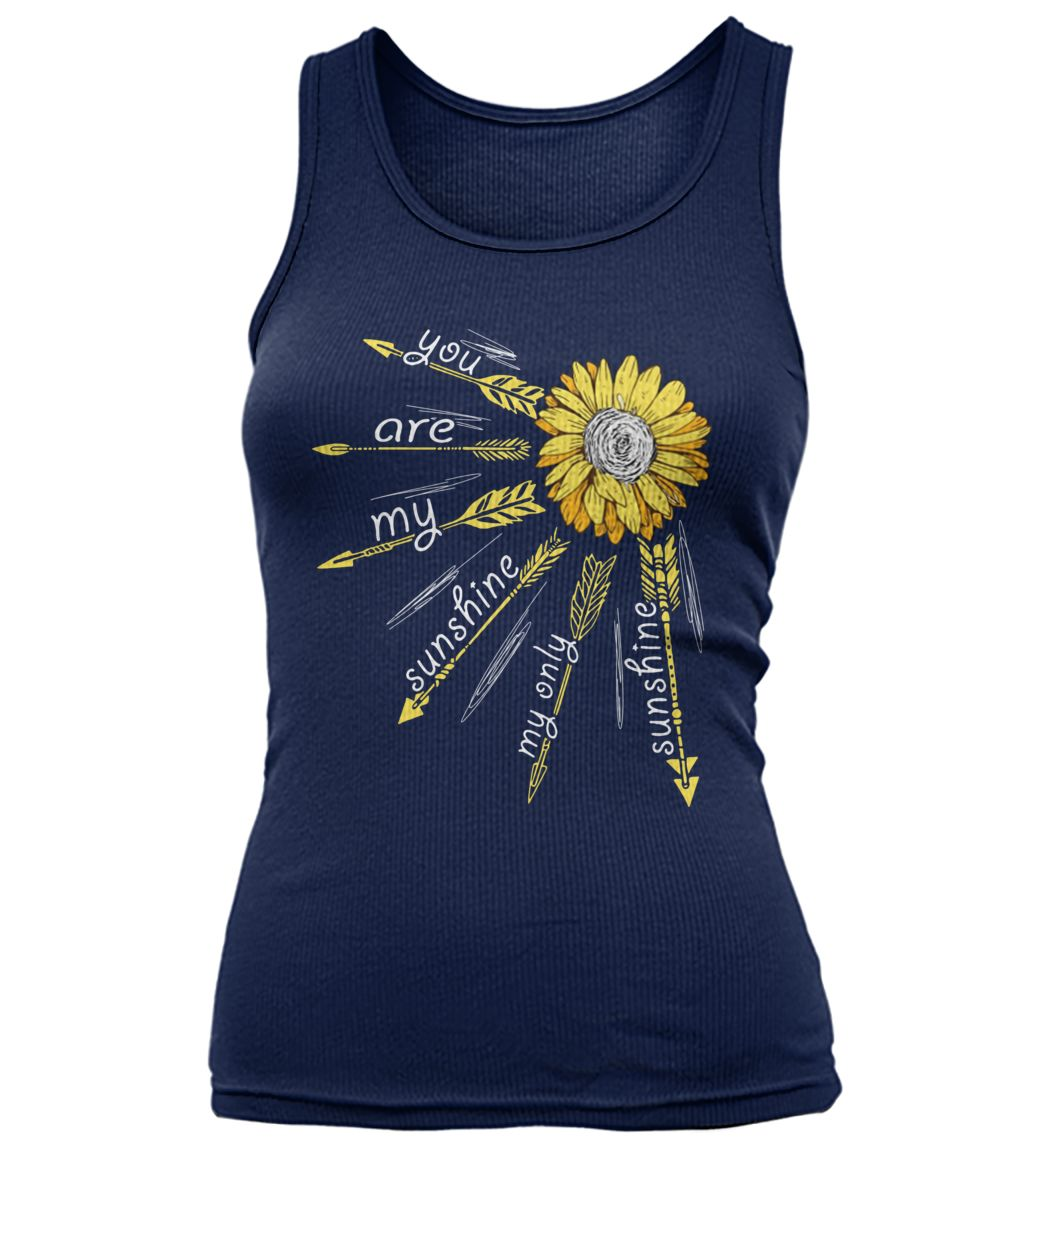 Sunflower arrow you are my sunshine women's tank top